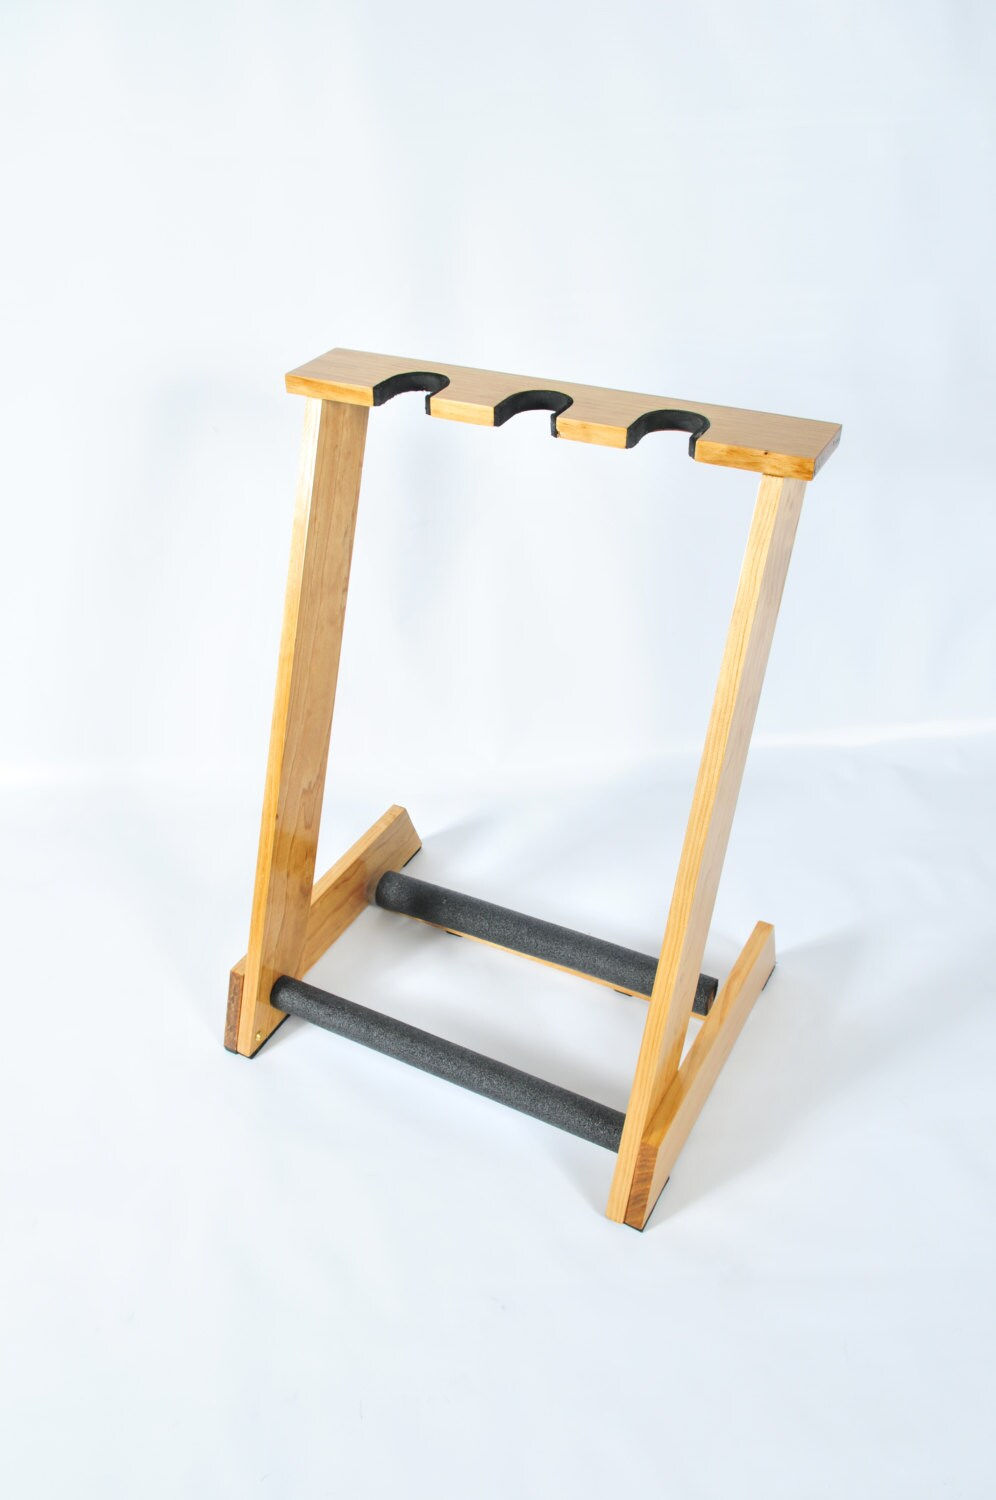 Guitar Stool Australia Handcrafted Wooden Guitar Stand From Allwood Stands